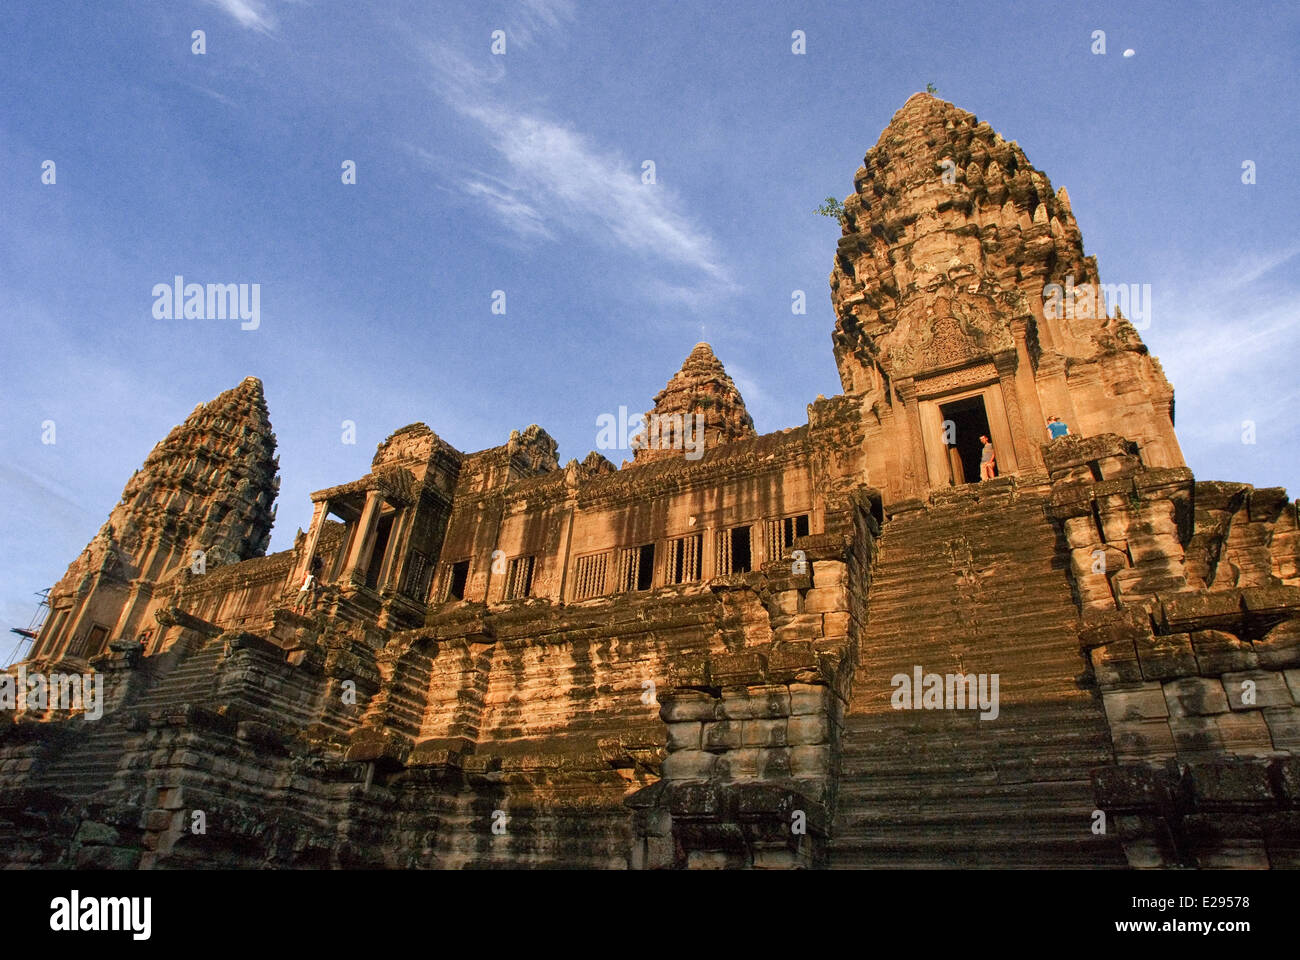 Rear of Angkor Wat. Angkor in Cambodia. The temples of Angkor, built by the Khmer civilization between 802 and 1220 - Stock Image